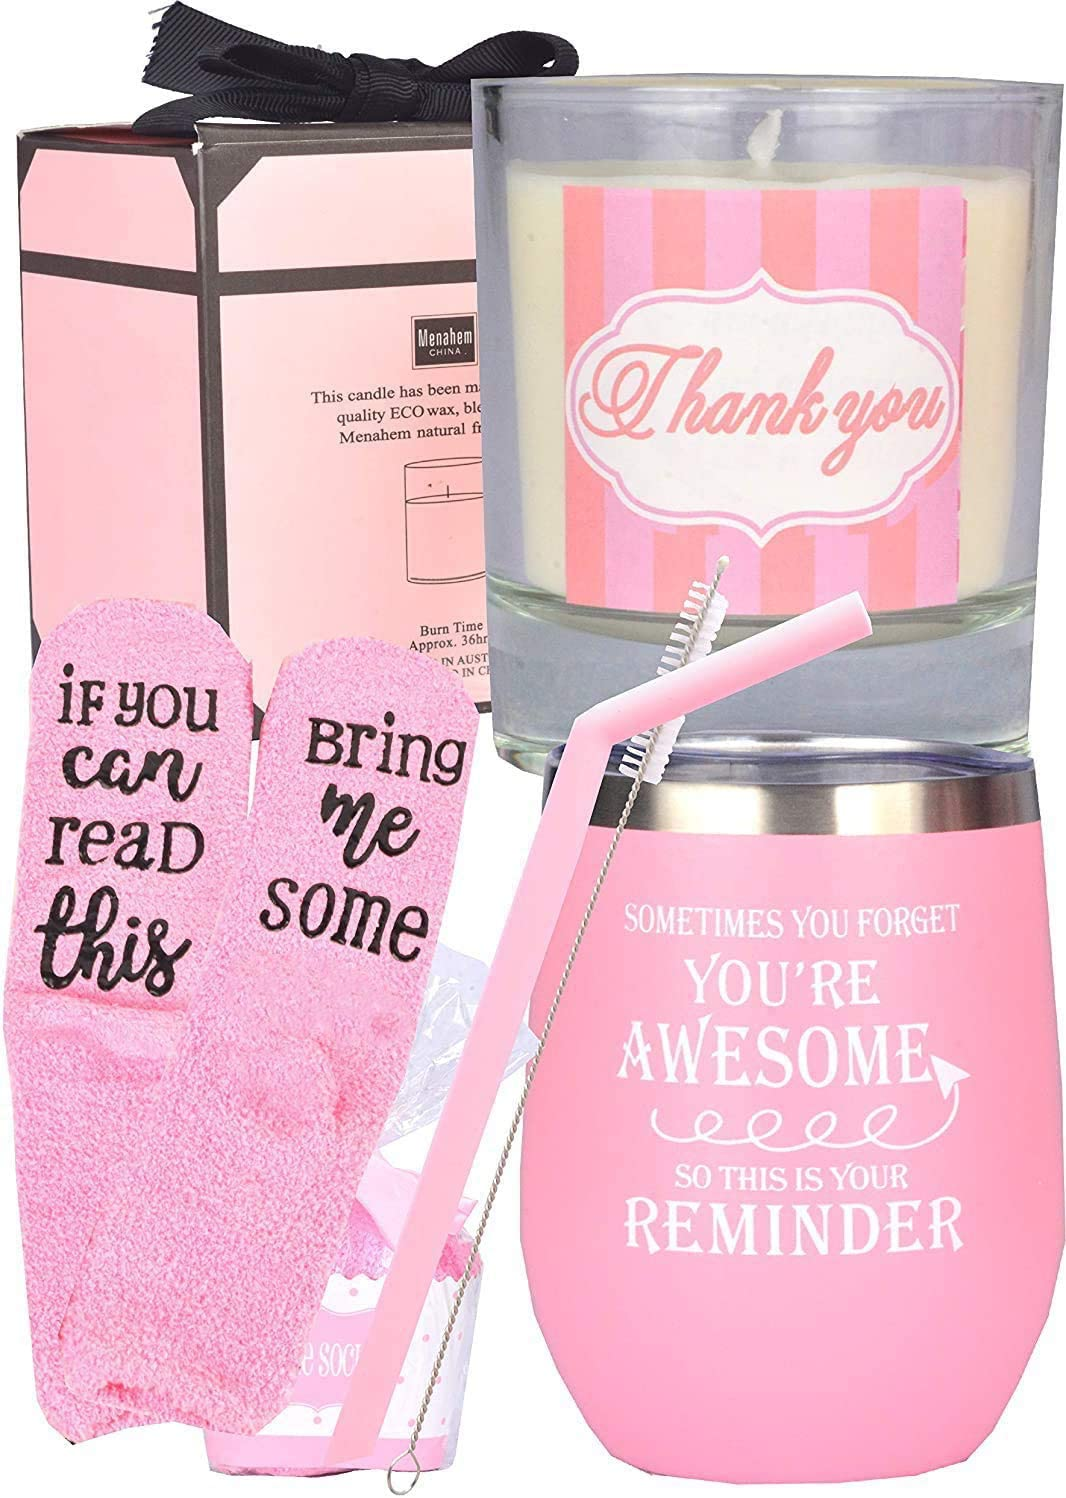 Sometimes You Forget You're Awesome So This Is Your Reminder Gift Set